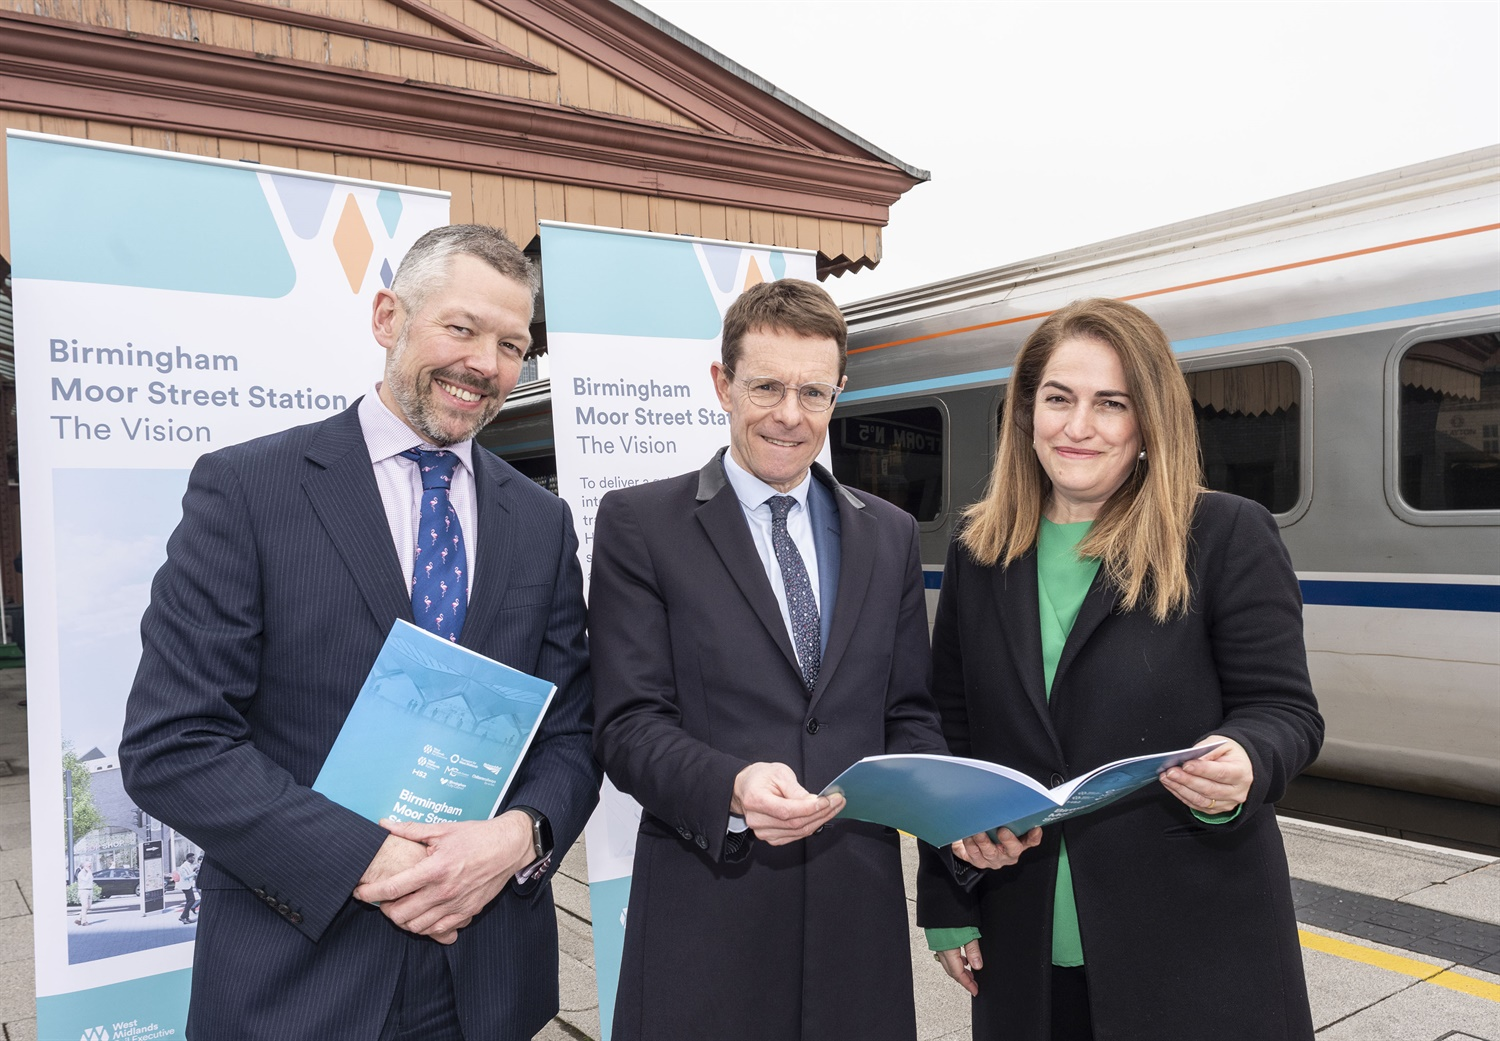 Birmingham Moor Street vision embraces the future and celebrates the past